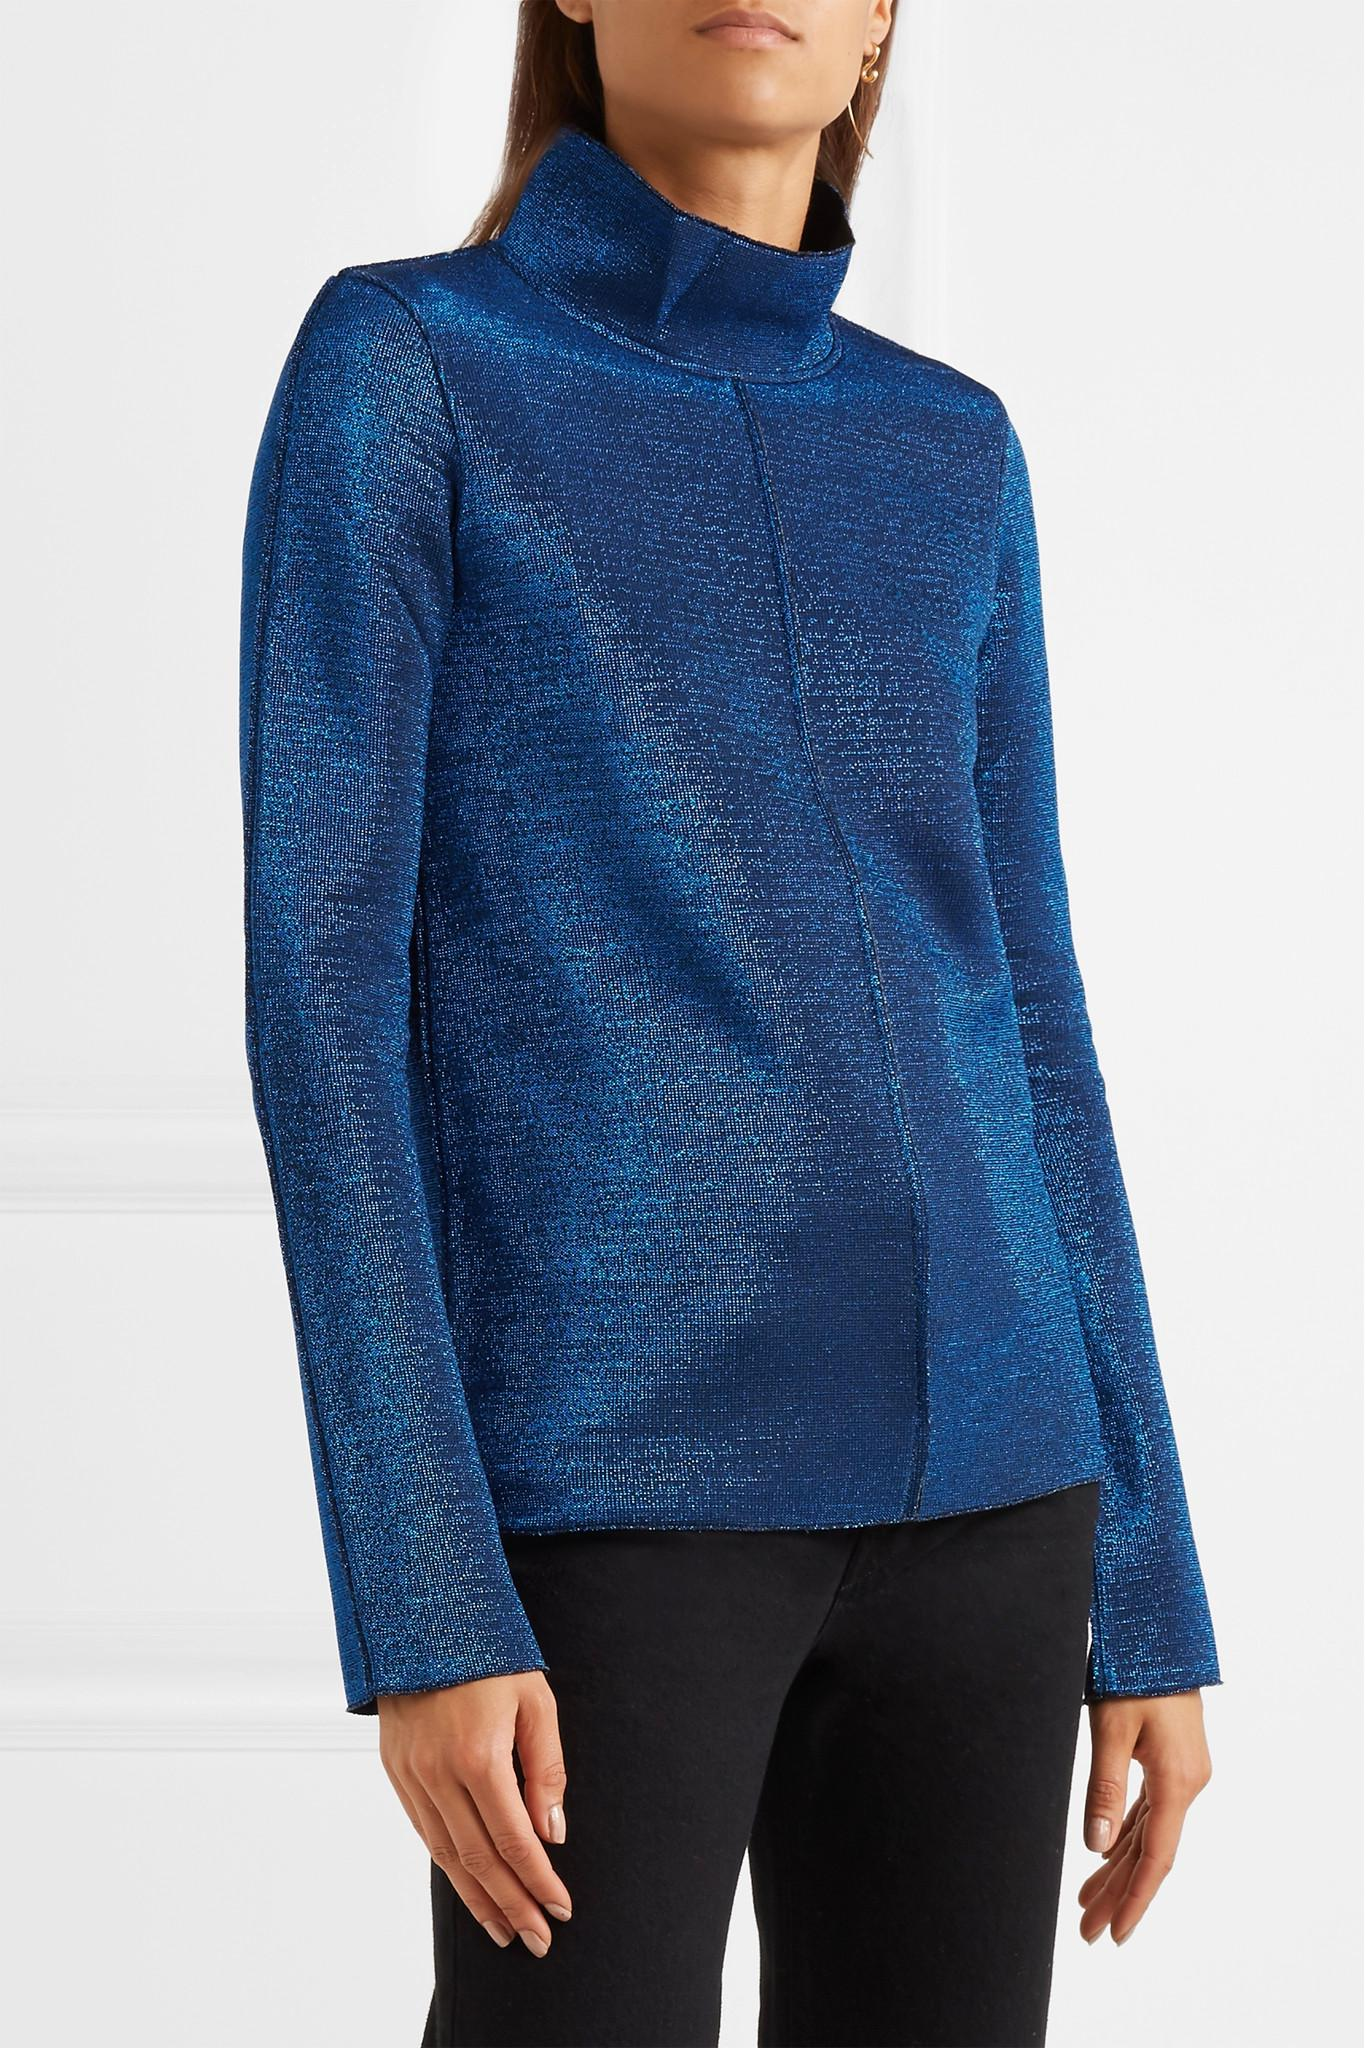 Exclusive Discount Best Place Diana Metallic Knitted Top - Blue Golden Goose Latest Sale Largest Supplier Pictures Cheap Price O3i9TkhPWR